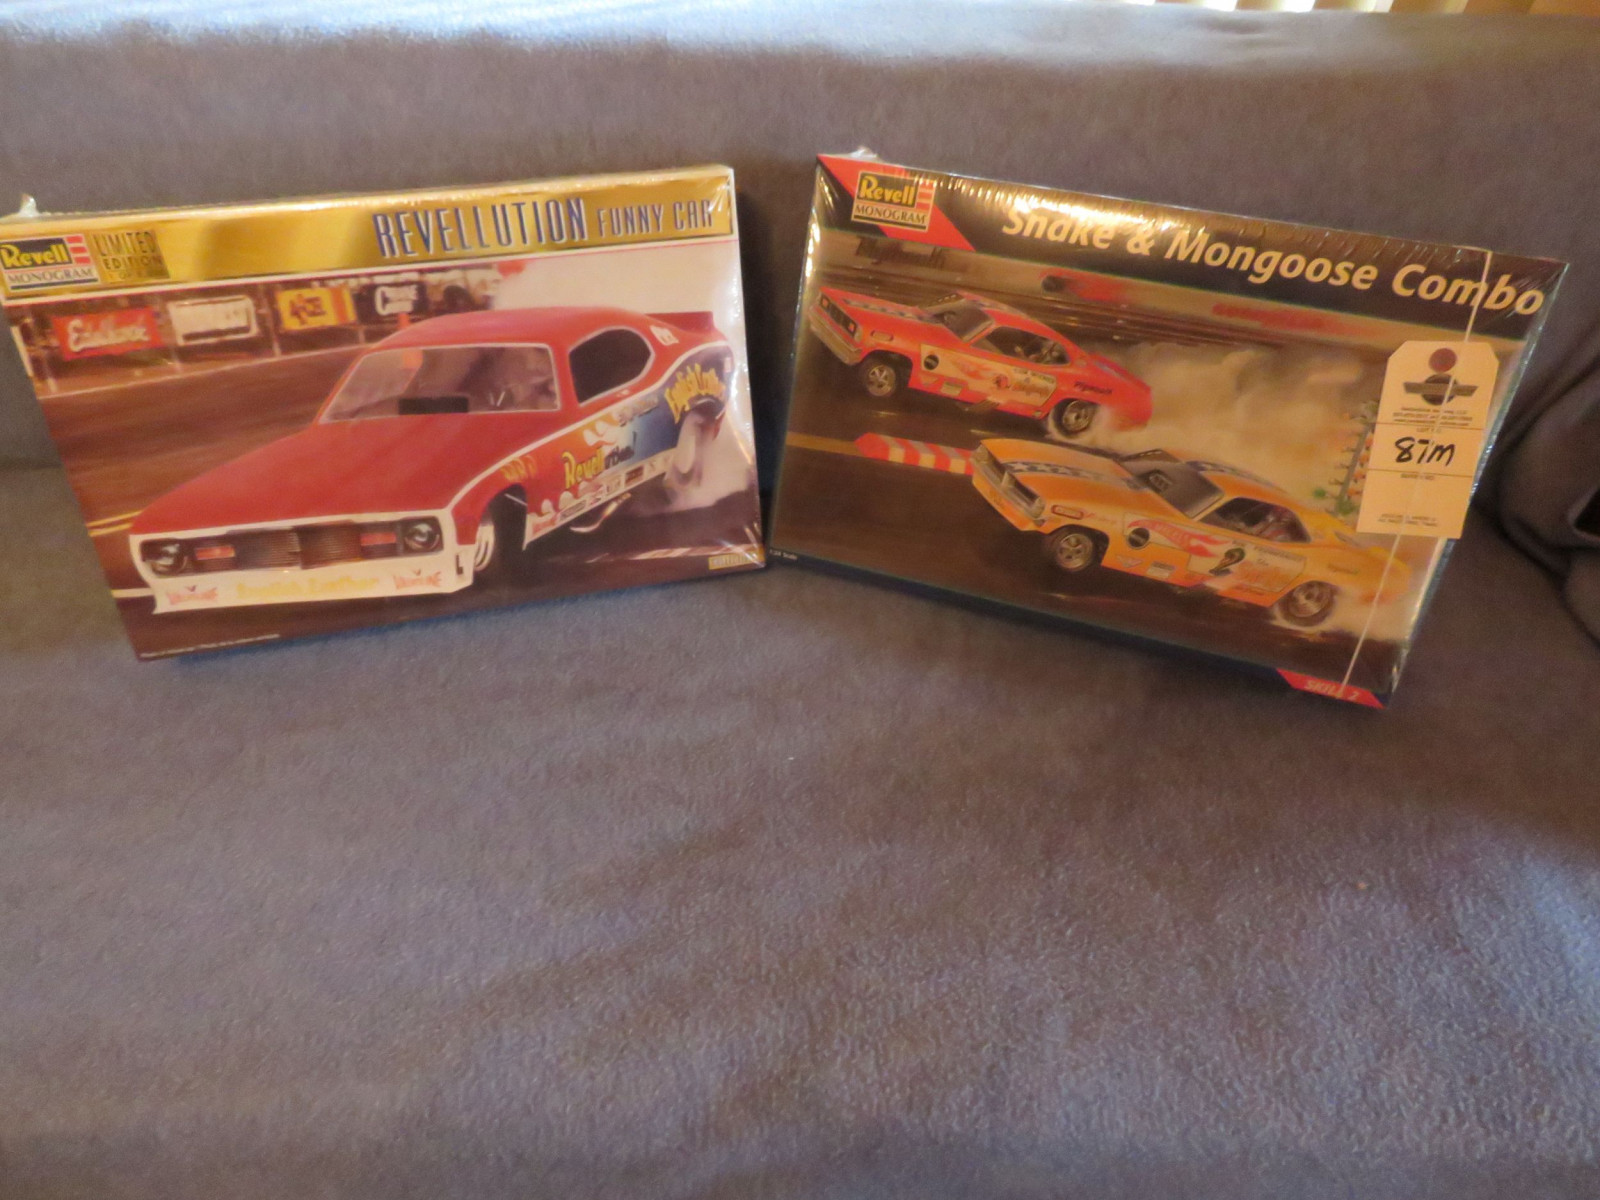 Revell Limited Edition NIB Snake and Mongoose Funny Car Combo pack Model  ALONG with Revell NIB Revellution Funny Car Model - Image 1